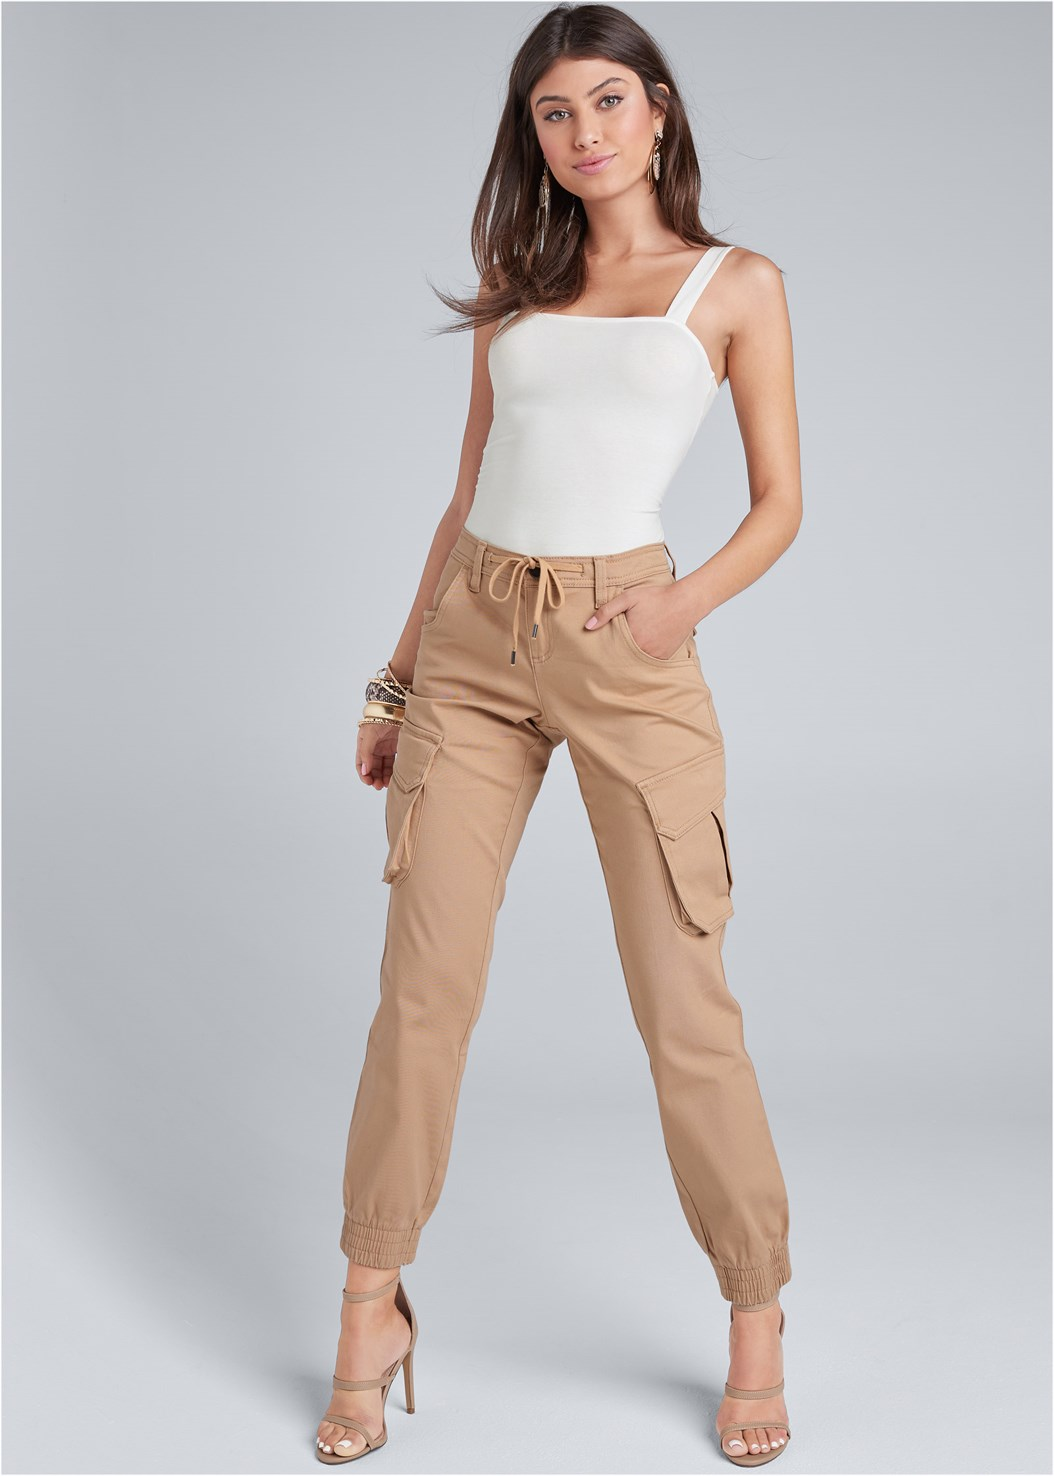 Cargo Pants,Square Neck Bodysuit,High Heel Strappy Sandals